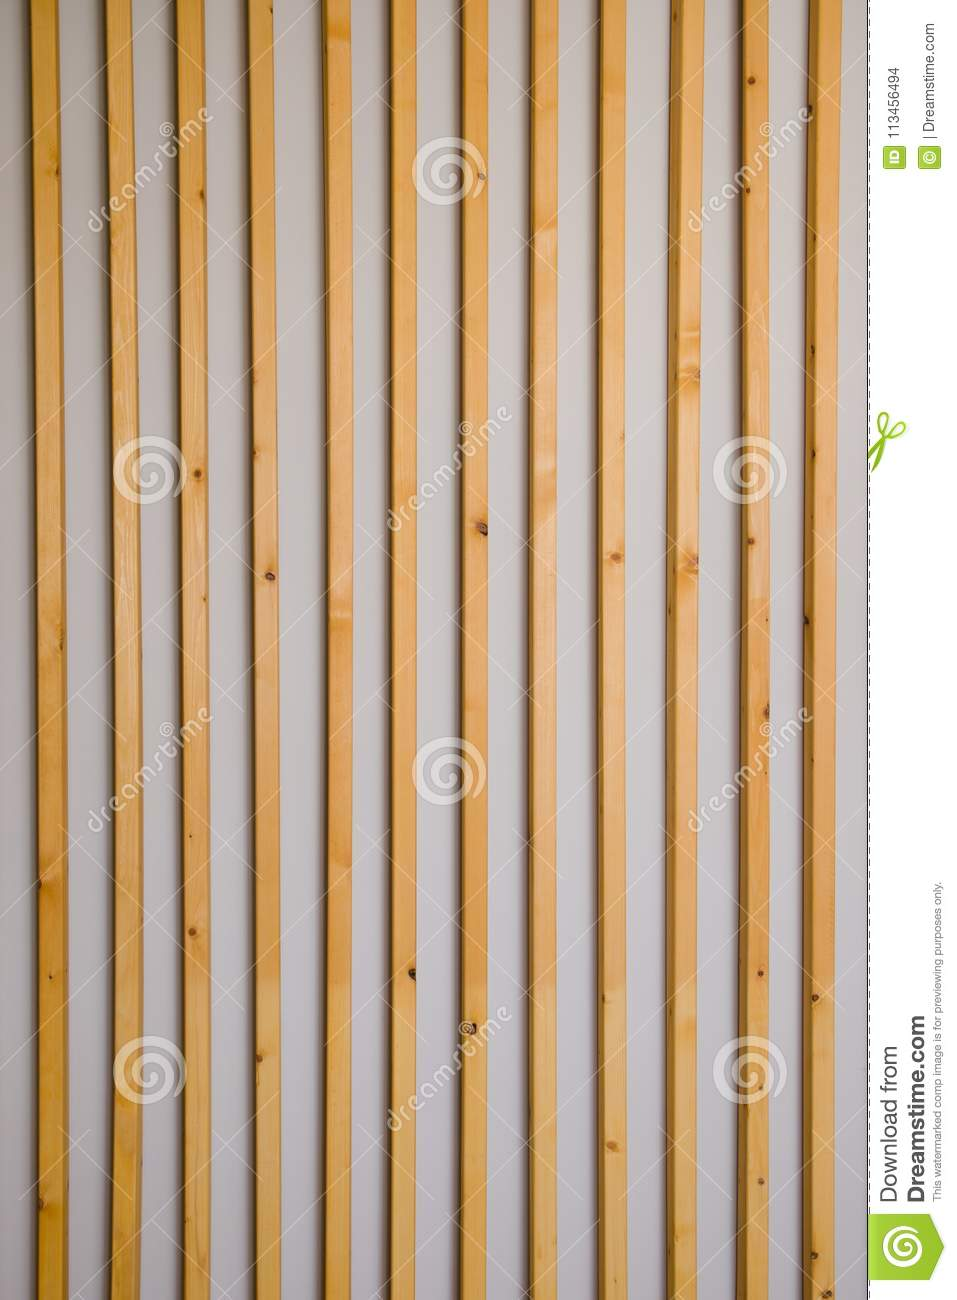 Wooden vertical slats batten on a light gray wall background. Interior detail, texture, background. The concept of minimalism and